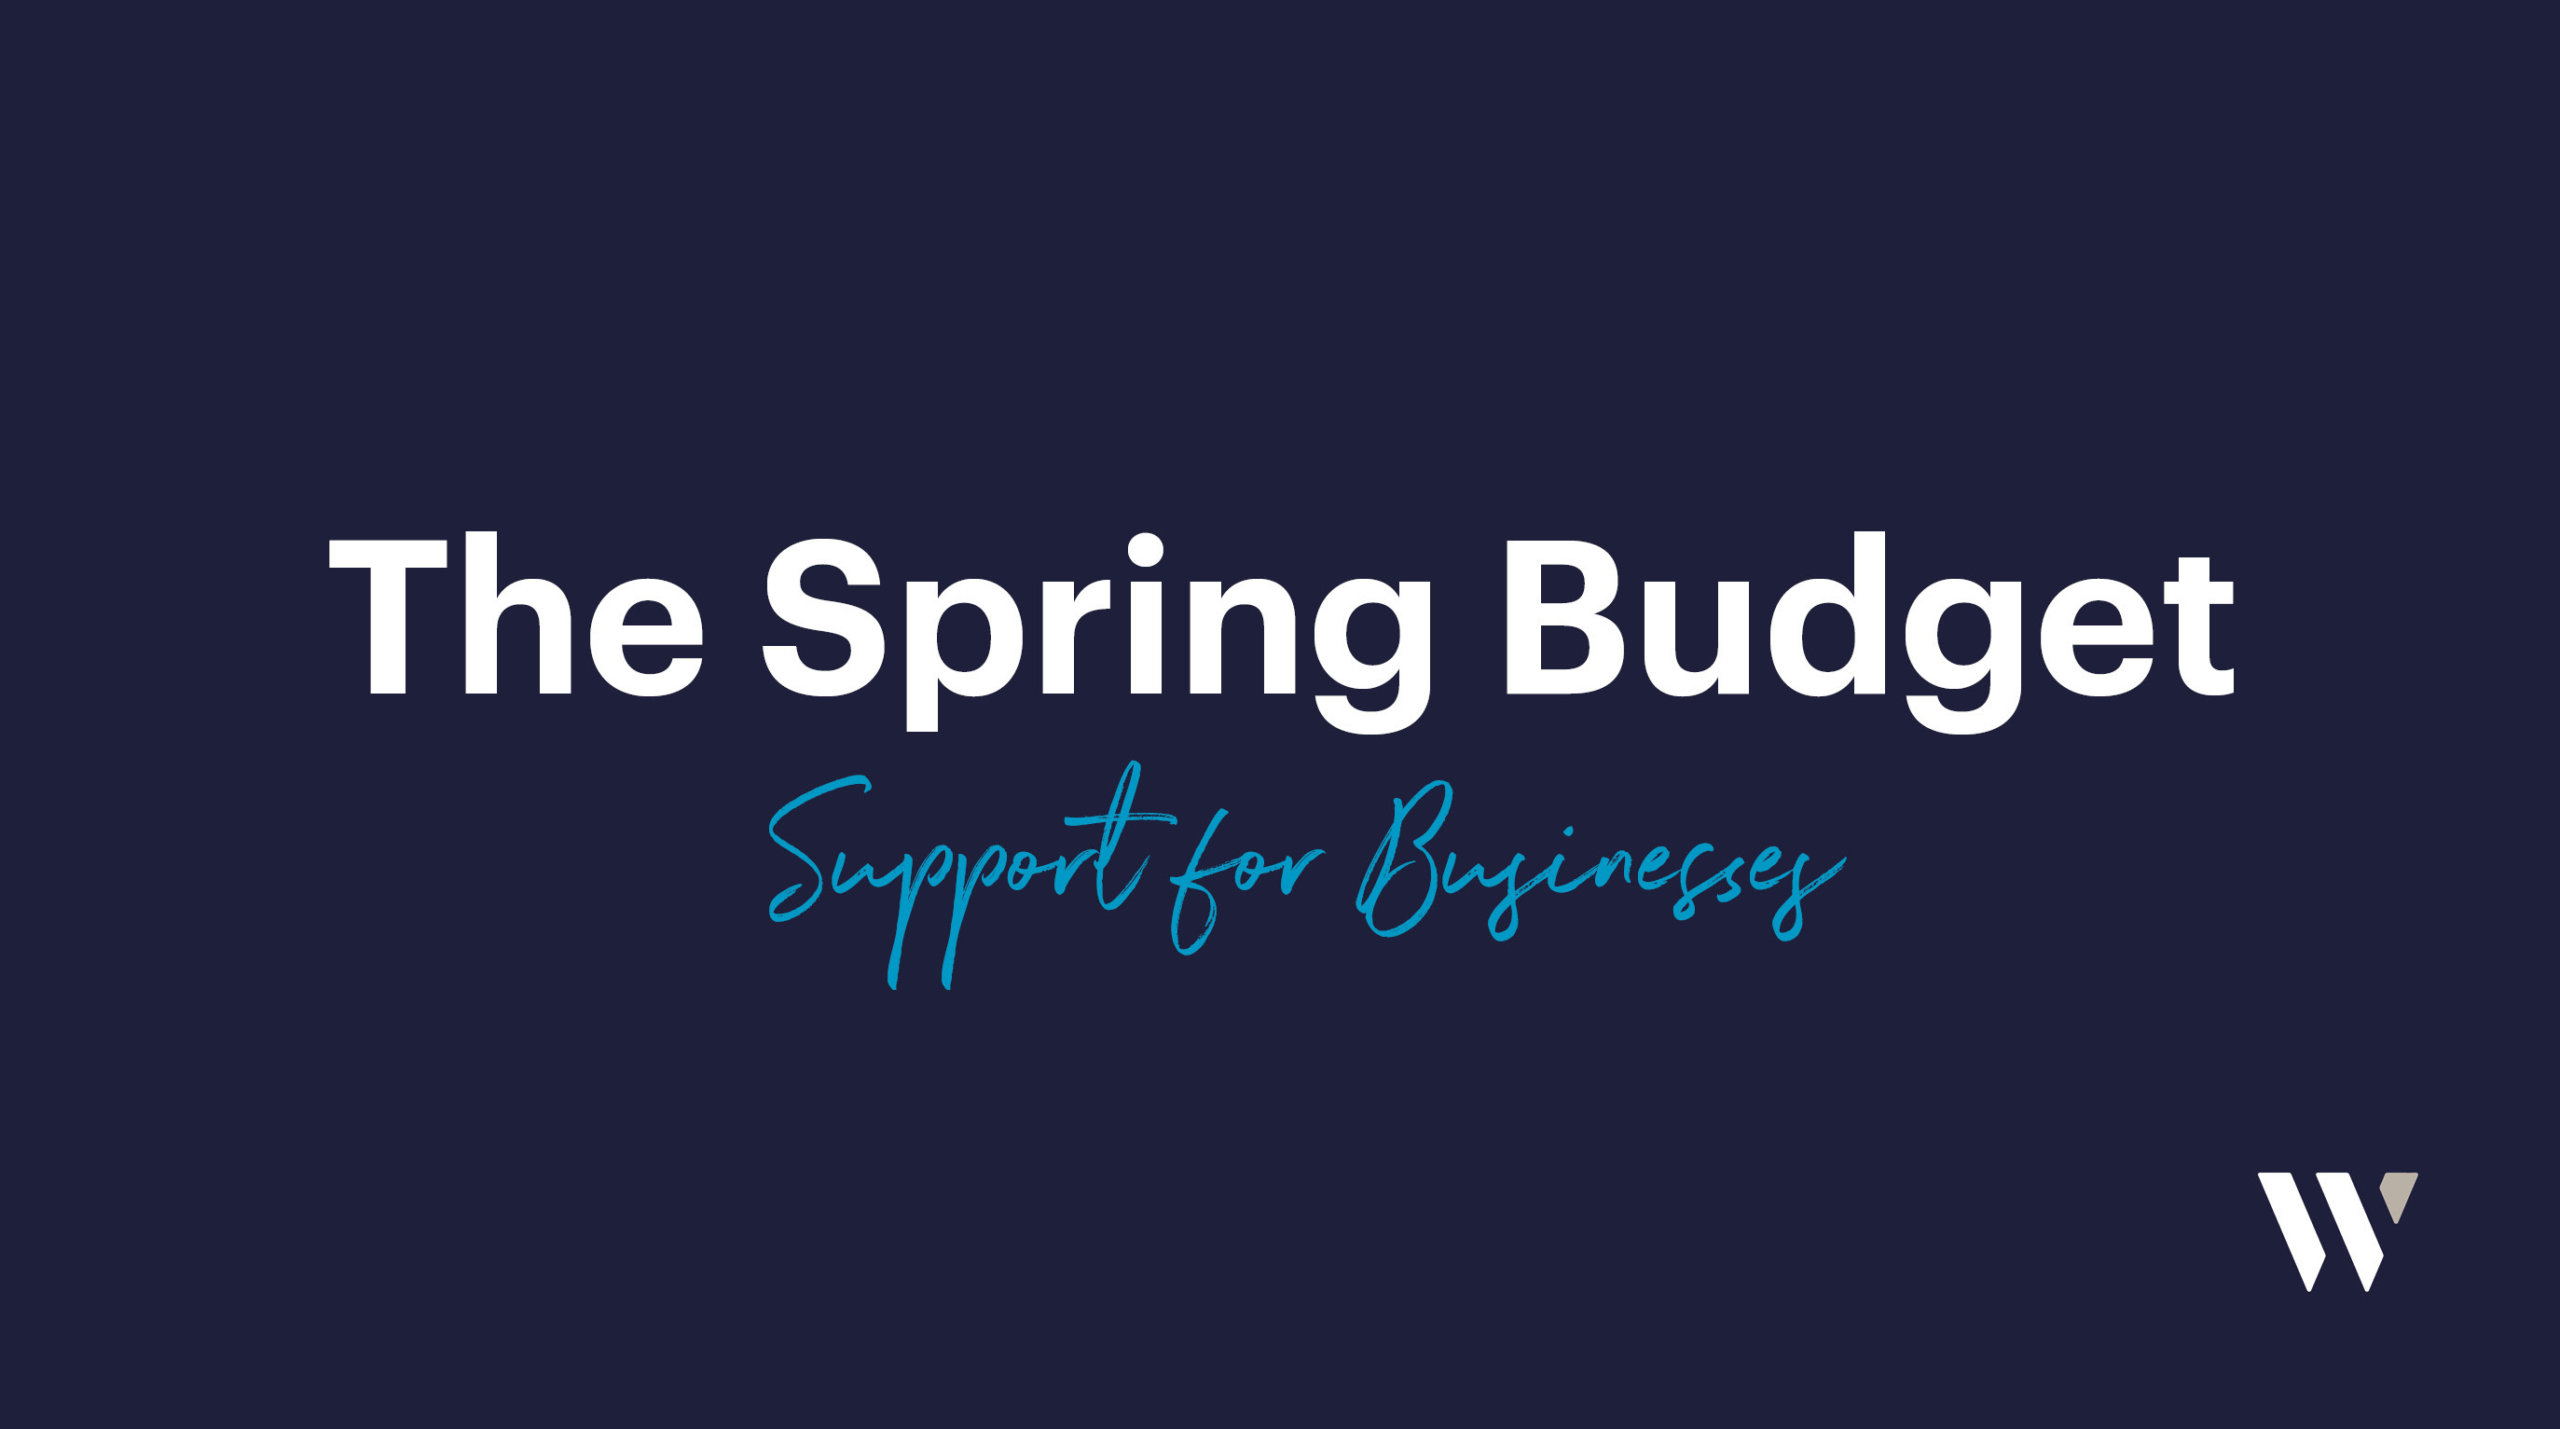 The Spring Budget - Support for Businesses